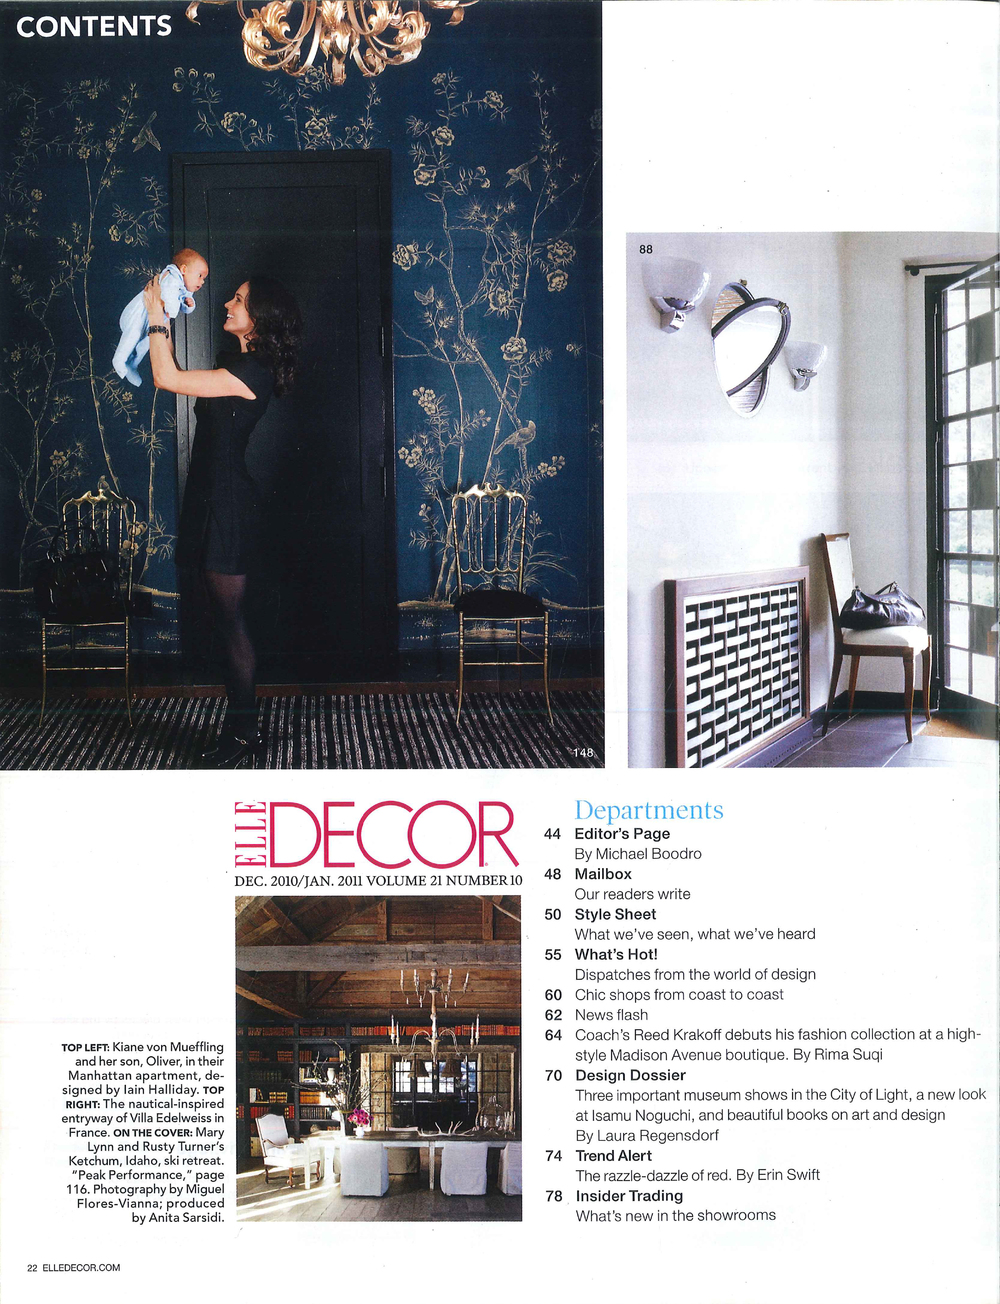 Elle Decor Dec.Jan 2010-11-1.jpg